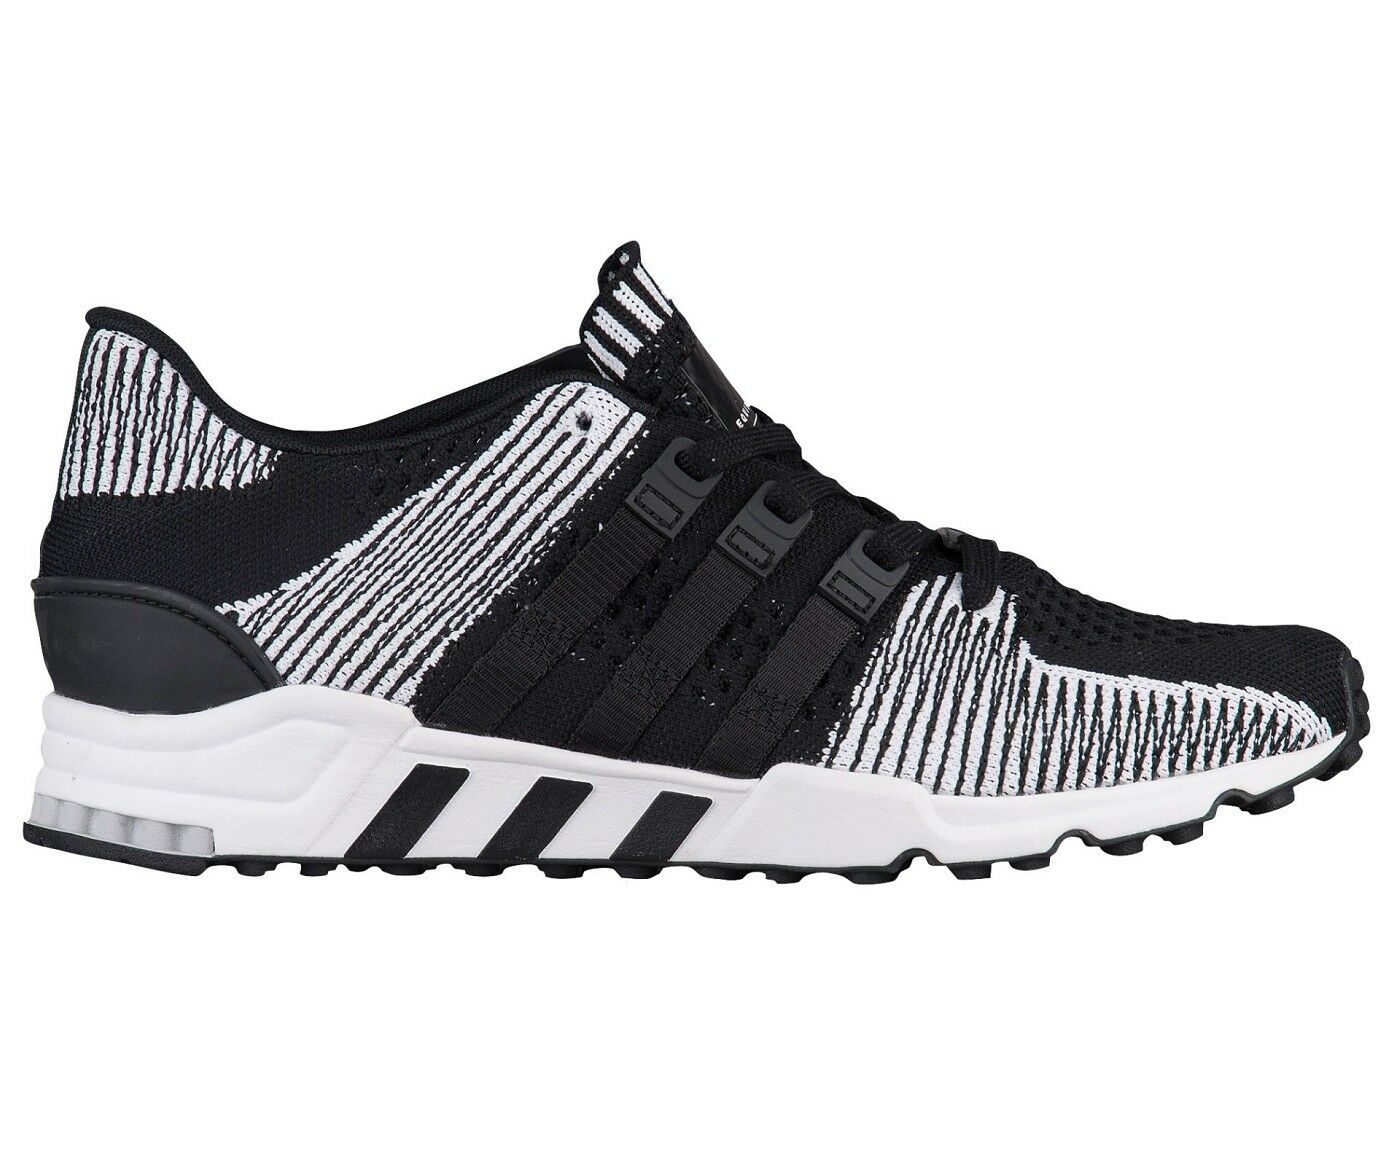 Adidas EQT Support RF Primeknit Mens BY9689 Black White Running Shoes Size 10